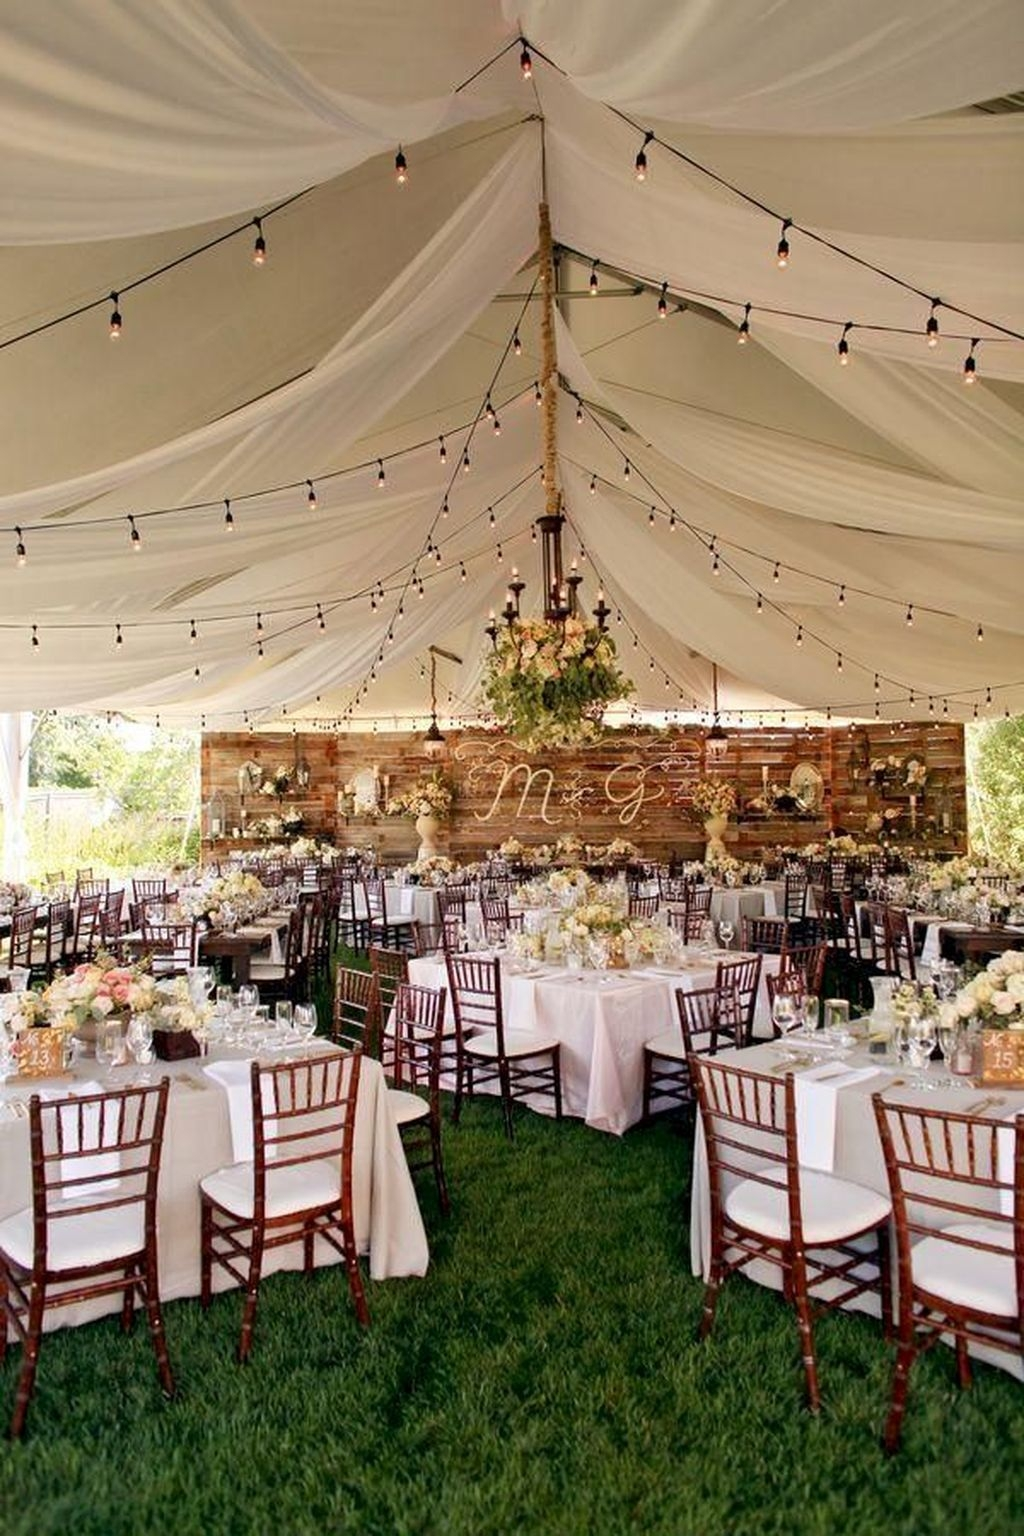 Beautiful Backyard Wedding Decor Ideas To Get A Romantic Impression 19